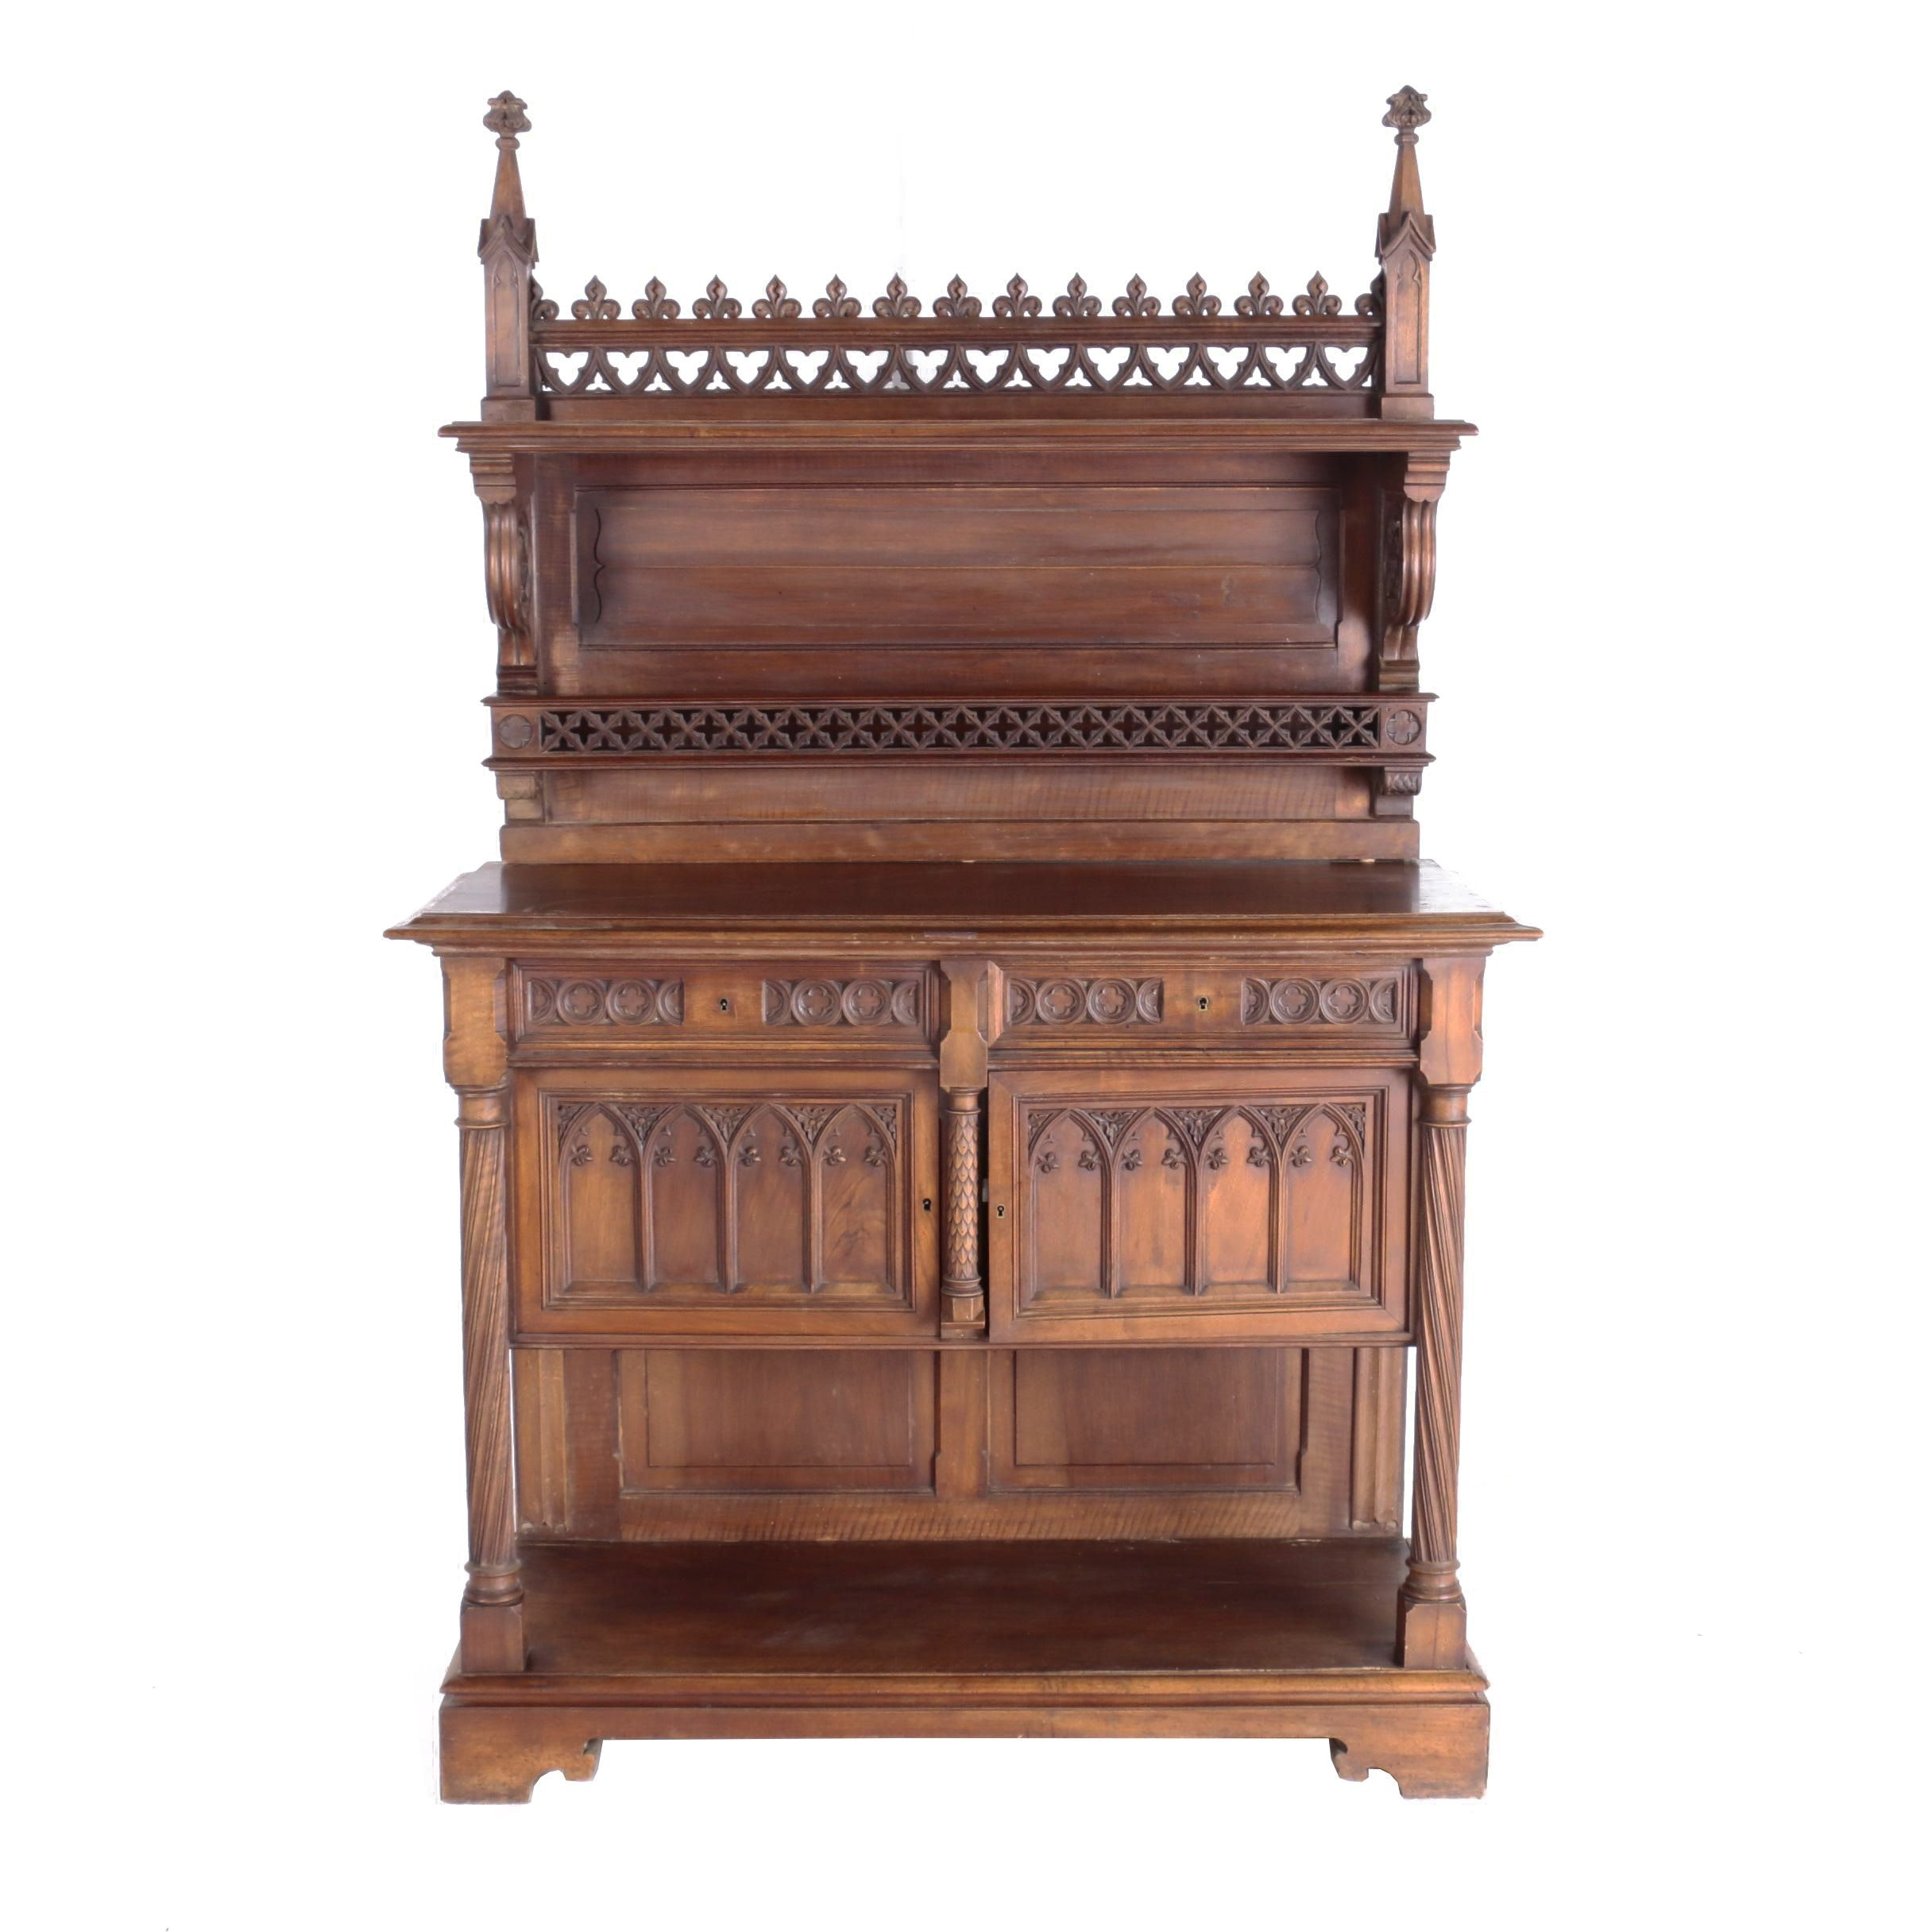 French Gothic Revival Walnut Server, Late 19th Century